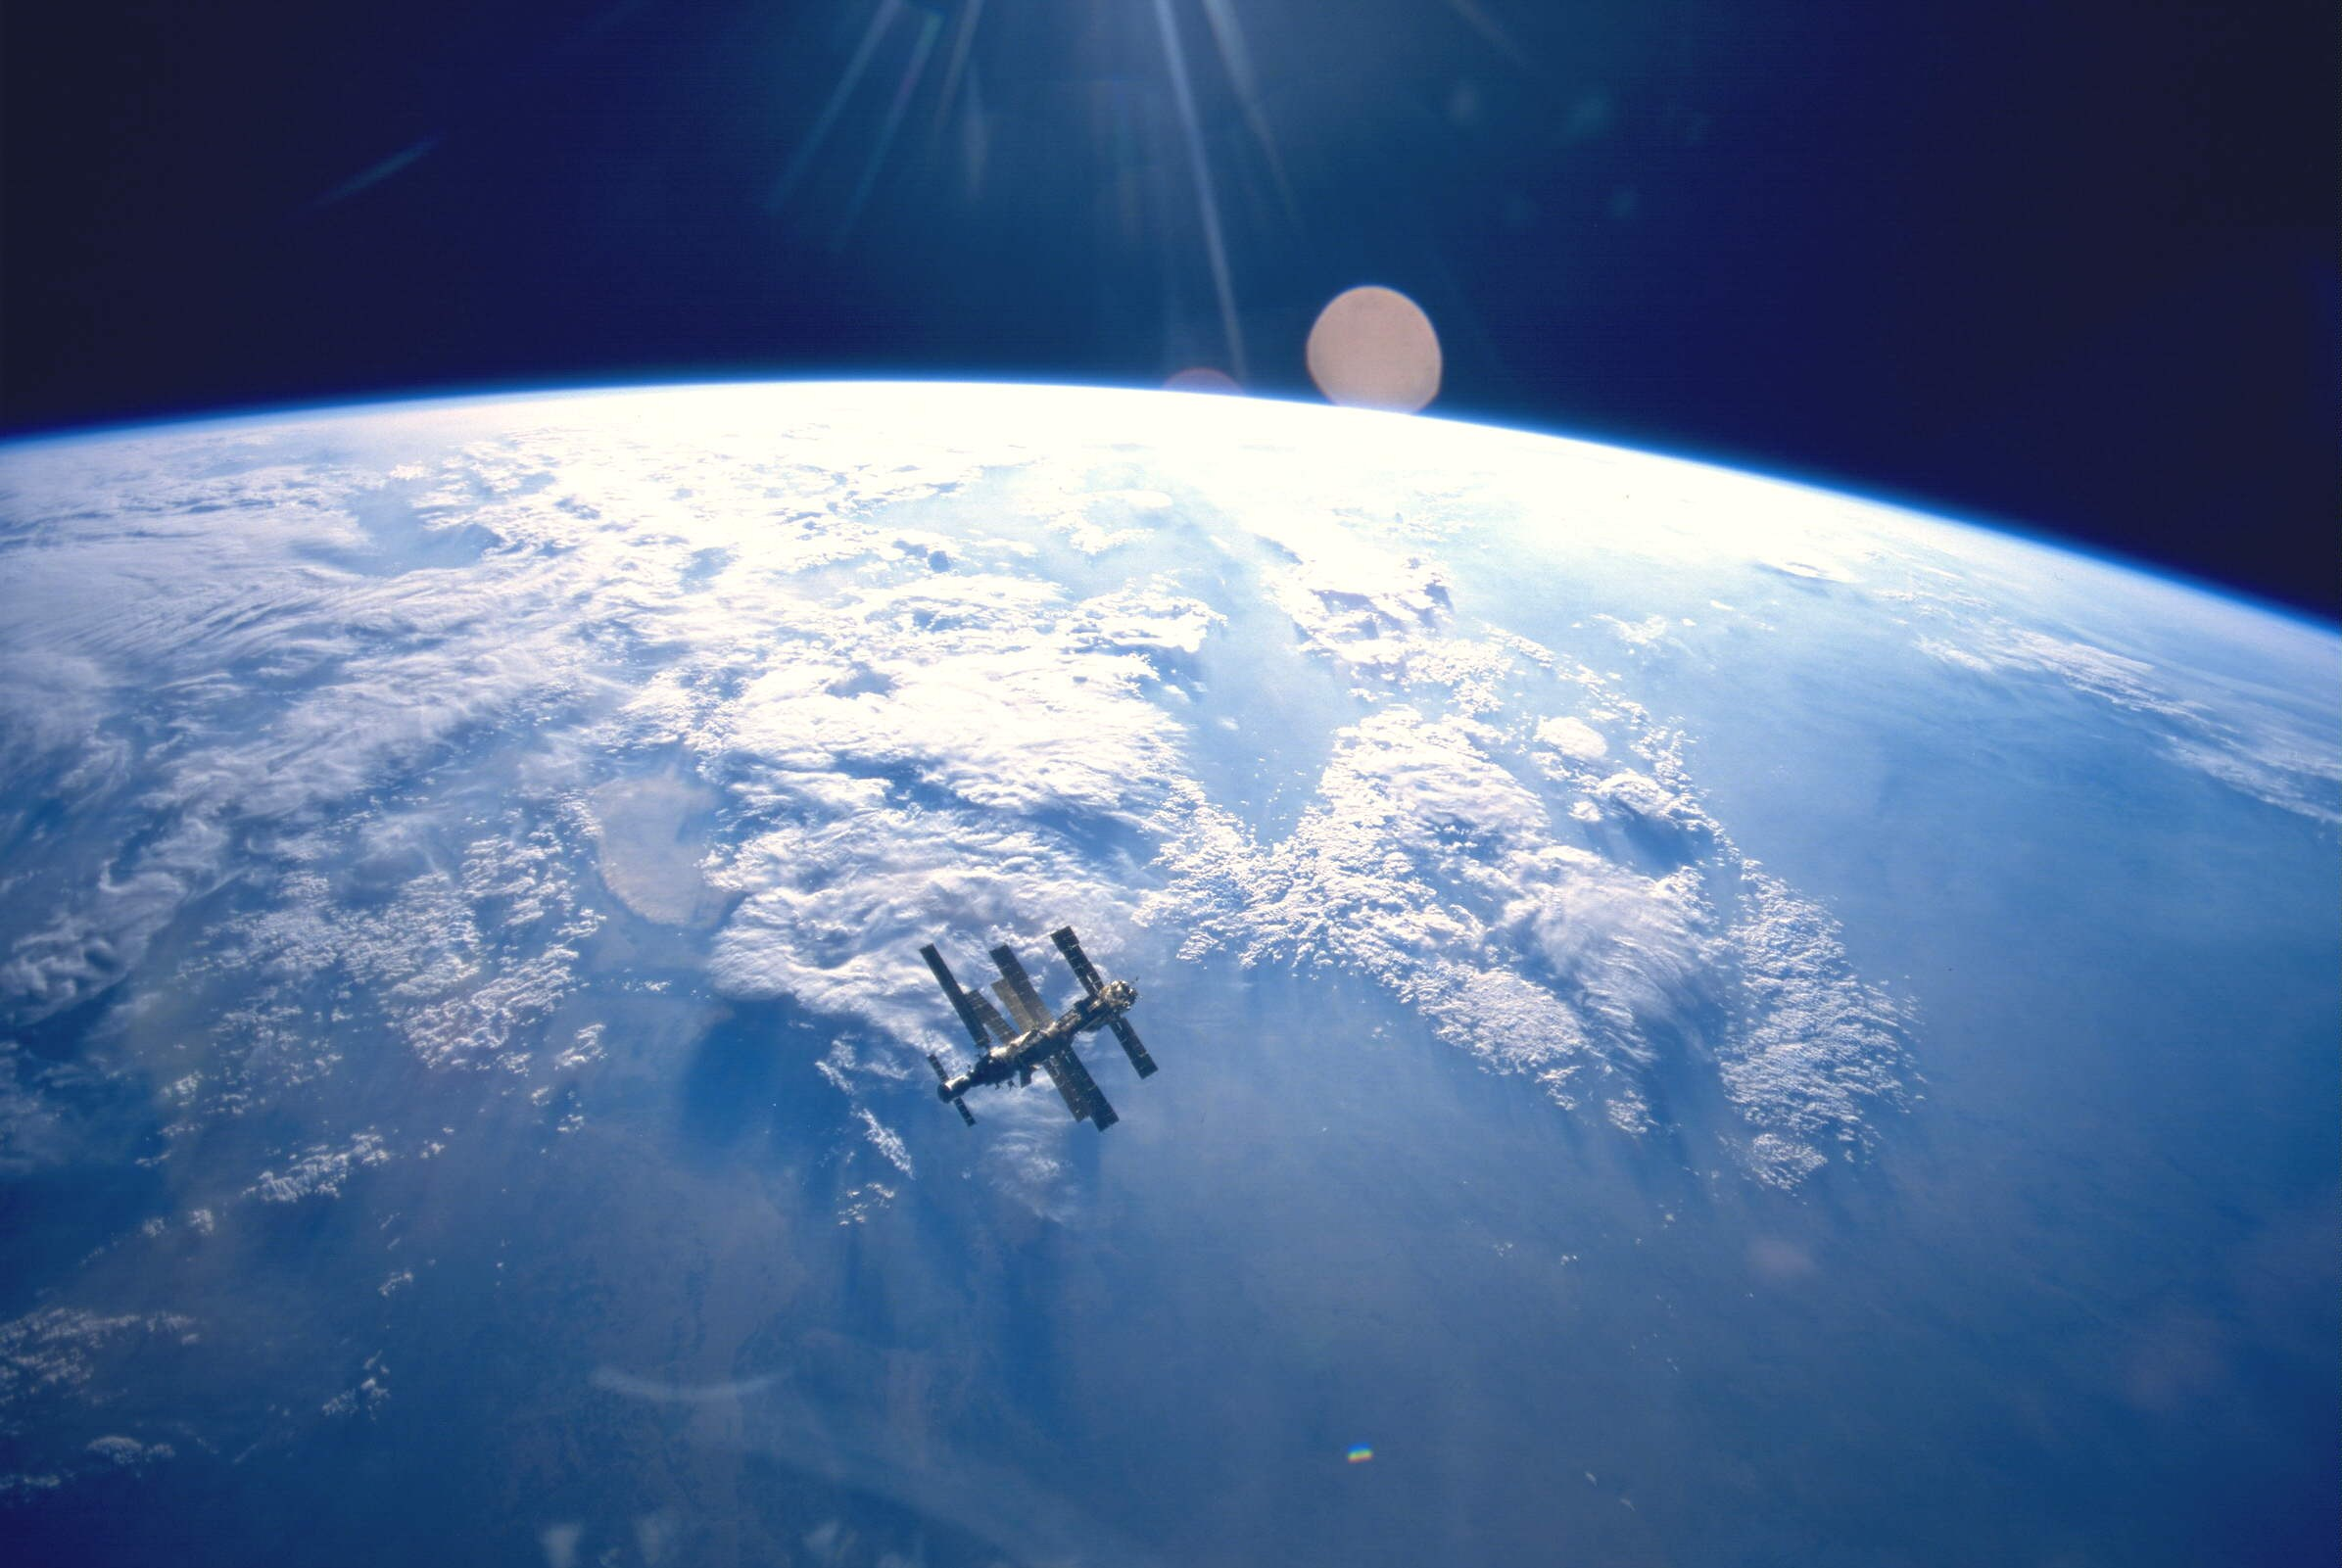 The Mir space station hangs above the Earth in 1995 (photo taken by the mission crew of the Space Shuttle Atlantis, STS-71) - Image Credit: NASA